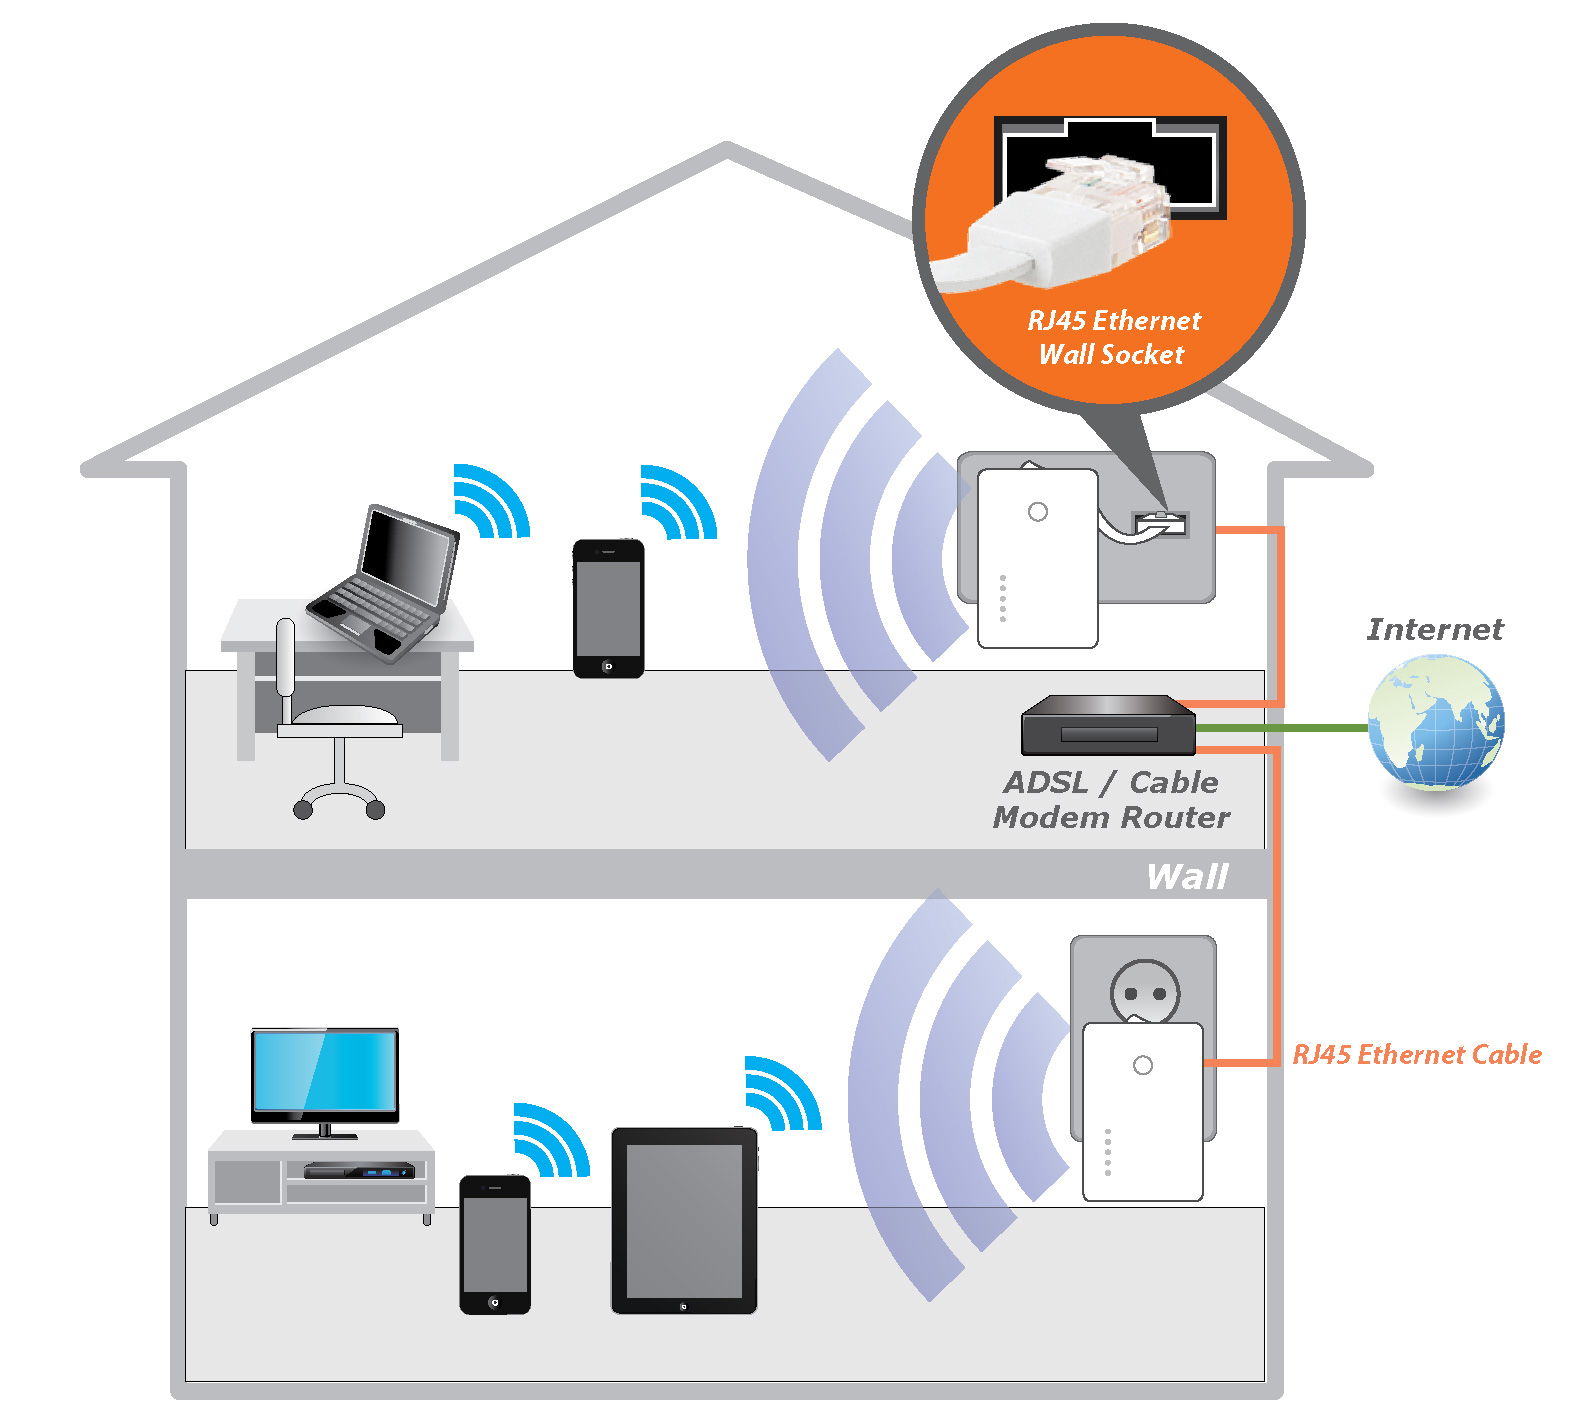 Edimax Wireless Access Point Setup Schematics Data Wiring Diagrams Diagram For Wrt54g Bulletproof Wifi Key To Successful Home Automation Ubiquiti